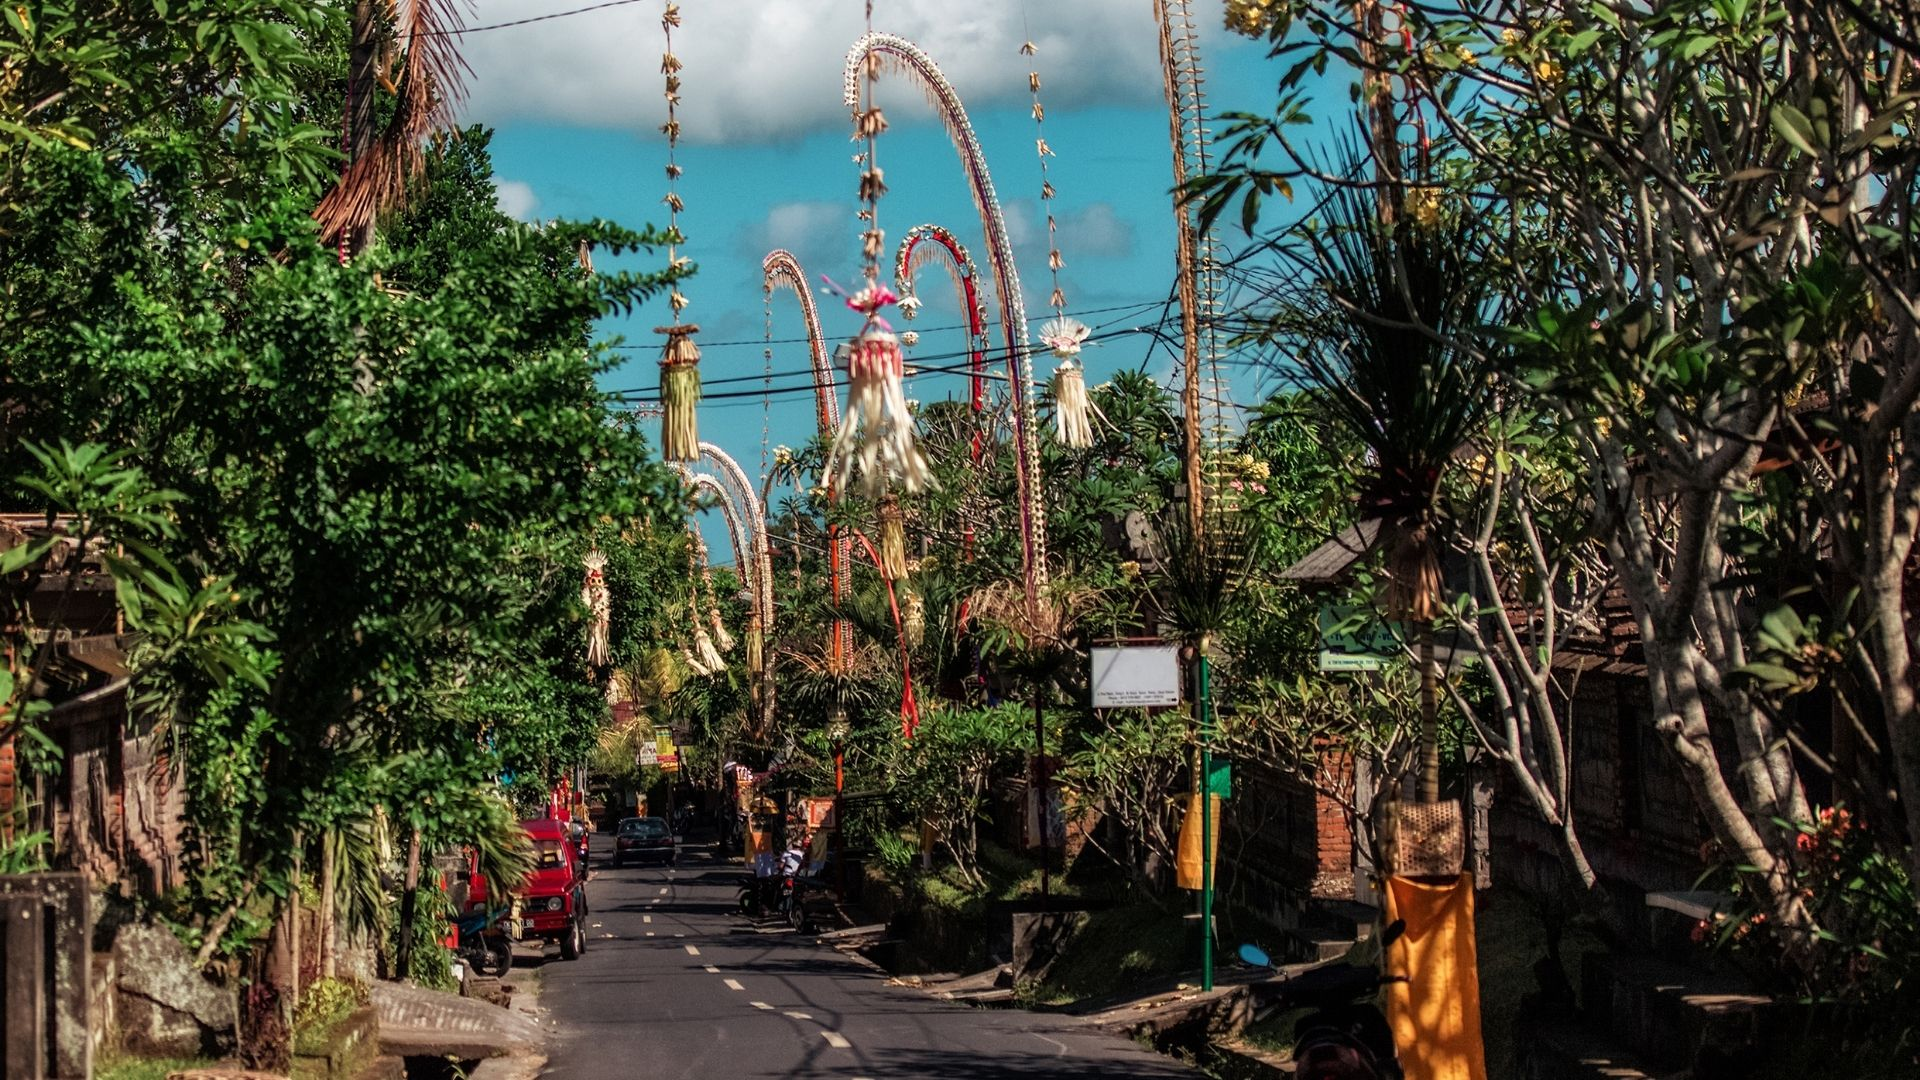 Balinese streets decorated with Galungan and Kuningan decorations